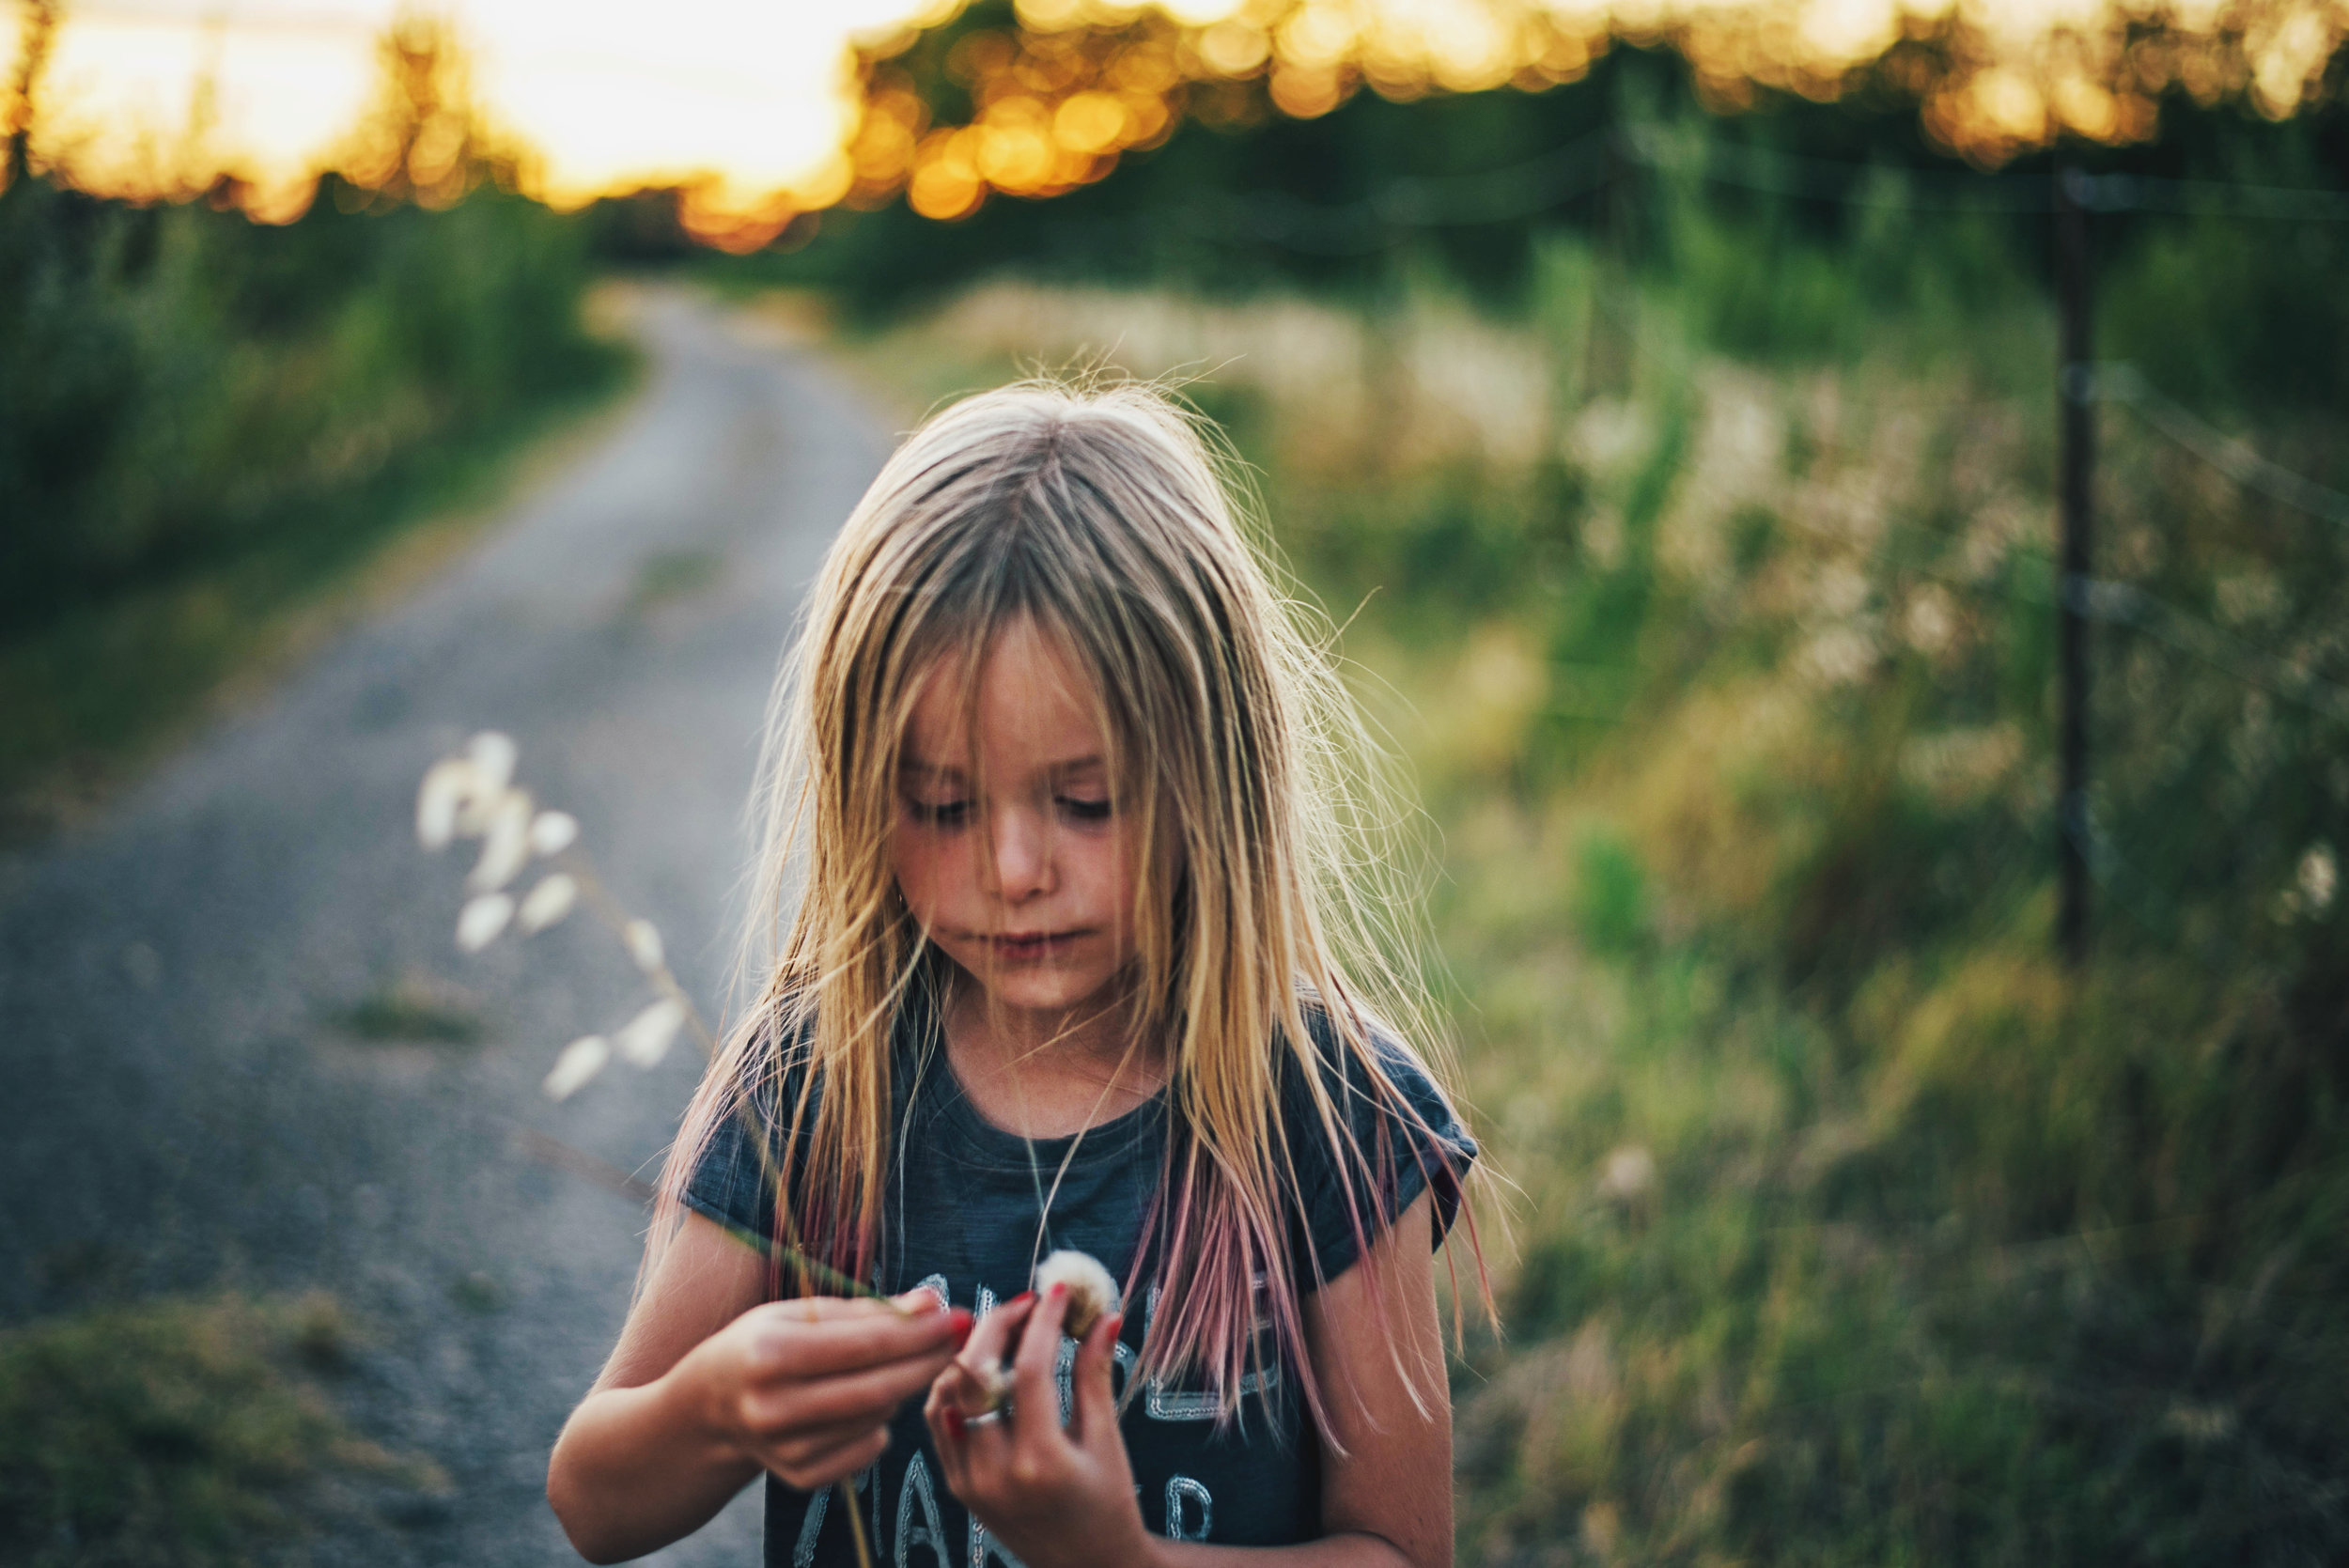 Young girl looks at flower Essex UK Documentary Portrait Photographer